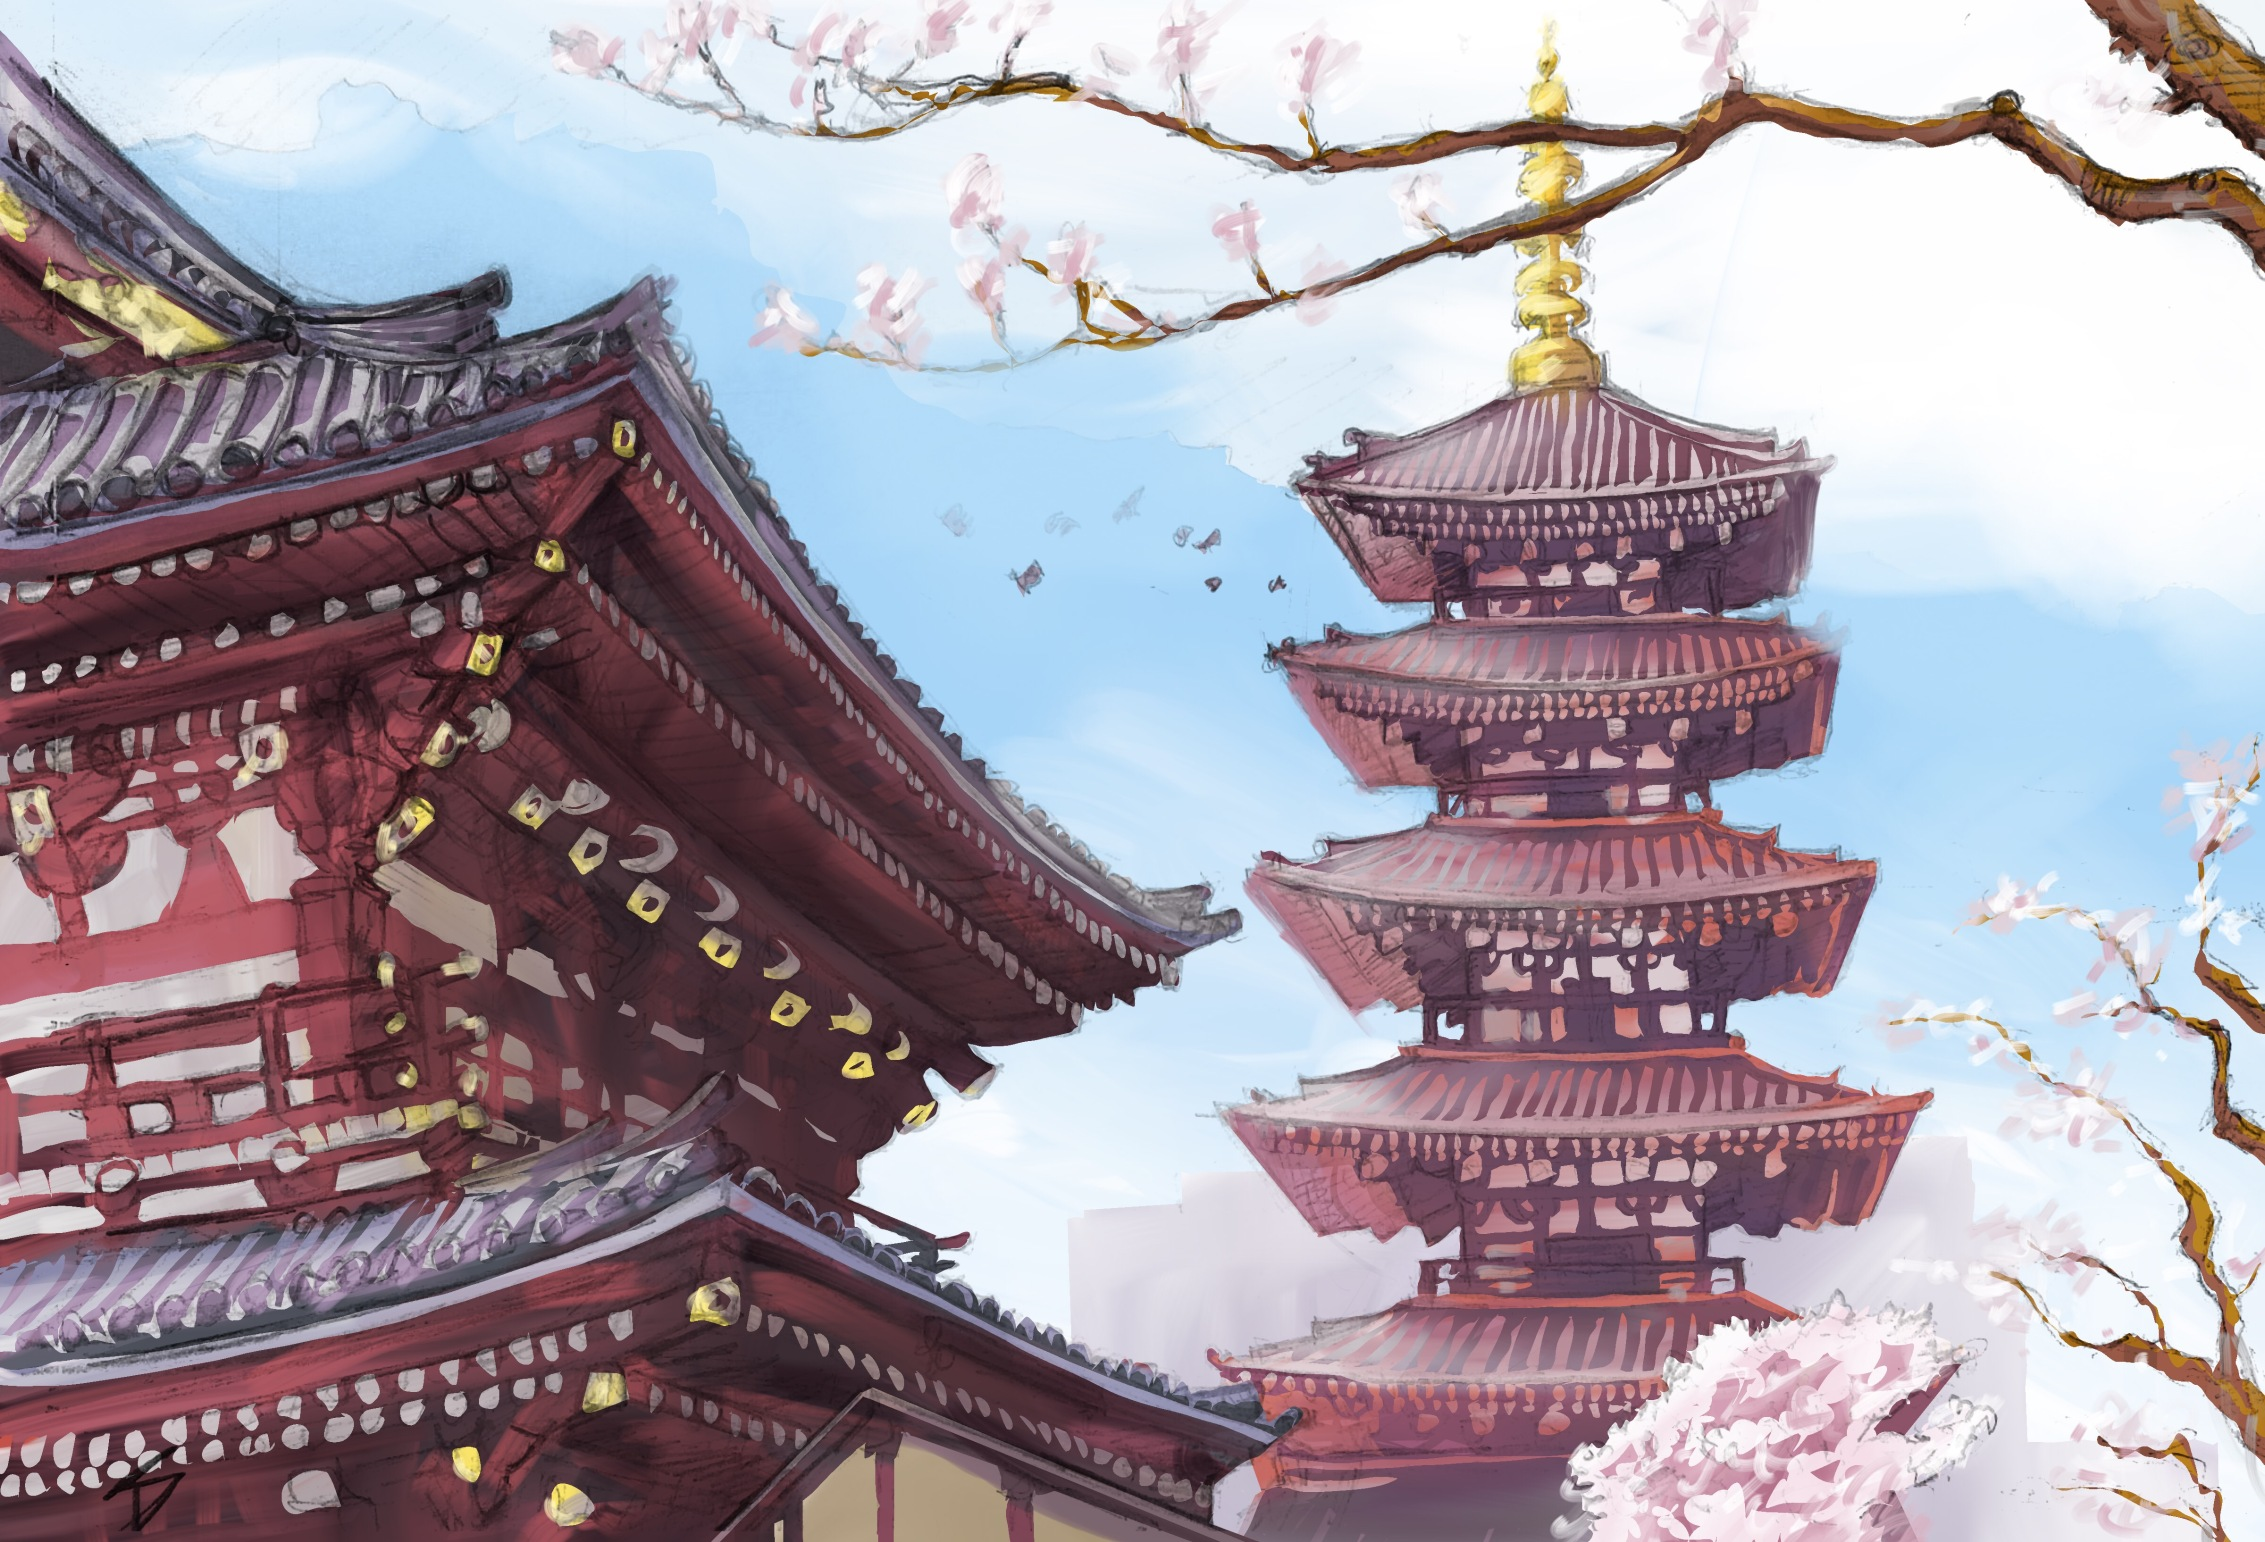 Ipad art - Asakusa, Tokyo, Japan. 'Senso-ji Temple.' A digitally painted up version of my original sketch. sketchbookexplorer.com @davidasutton @sketchbookexplorer Facebook.com/davidanthonysutton #japan #tokyo #asakusa #Sensojitemple #travel #travelblog #art #sketching #cheeryblossom #cherryblossomseason #cherryblossomjapan #ipadart #procreate #sketchbookpro